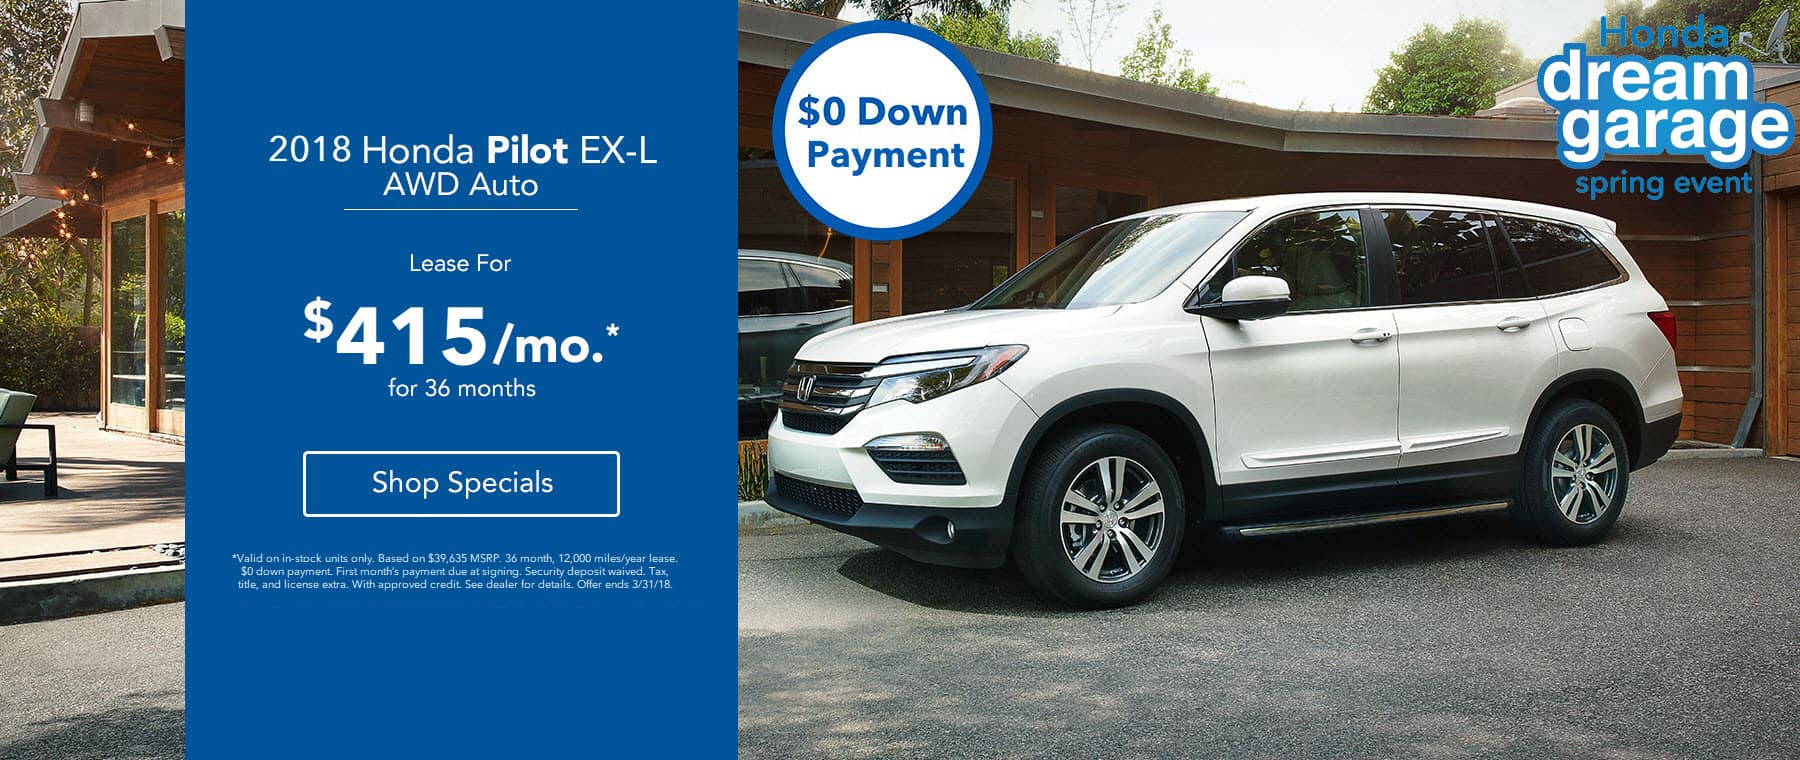 Honda Pilot - Lease for $415/mo